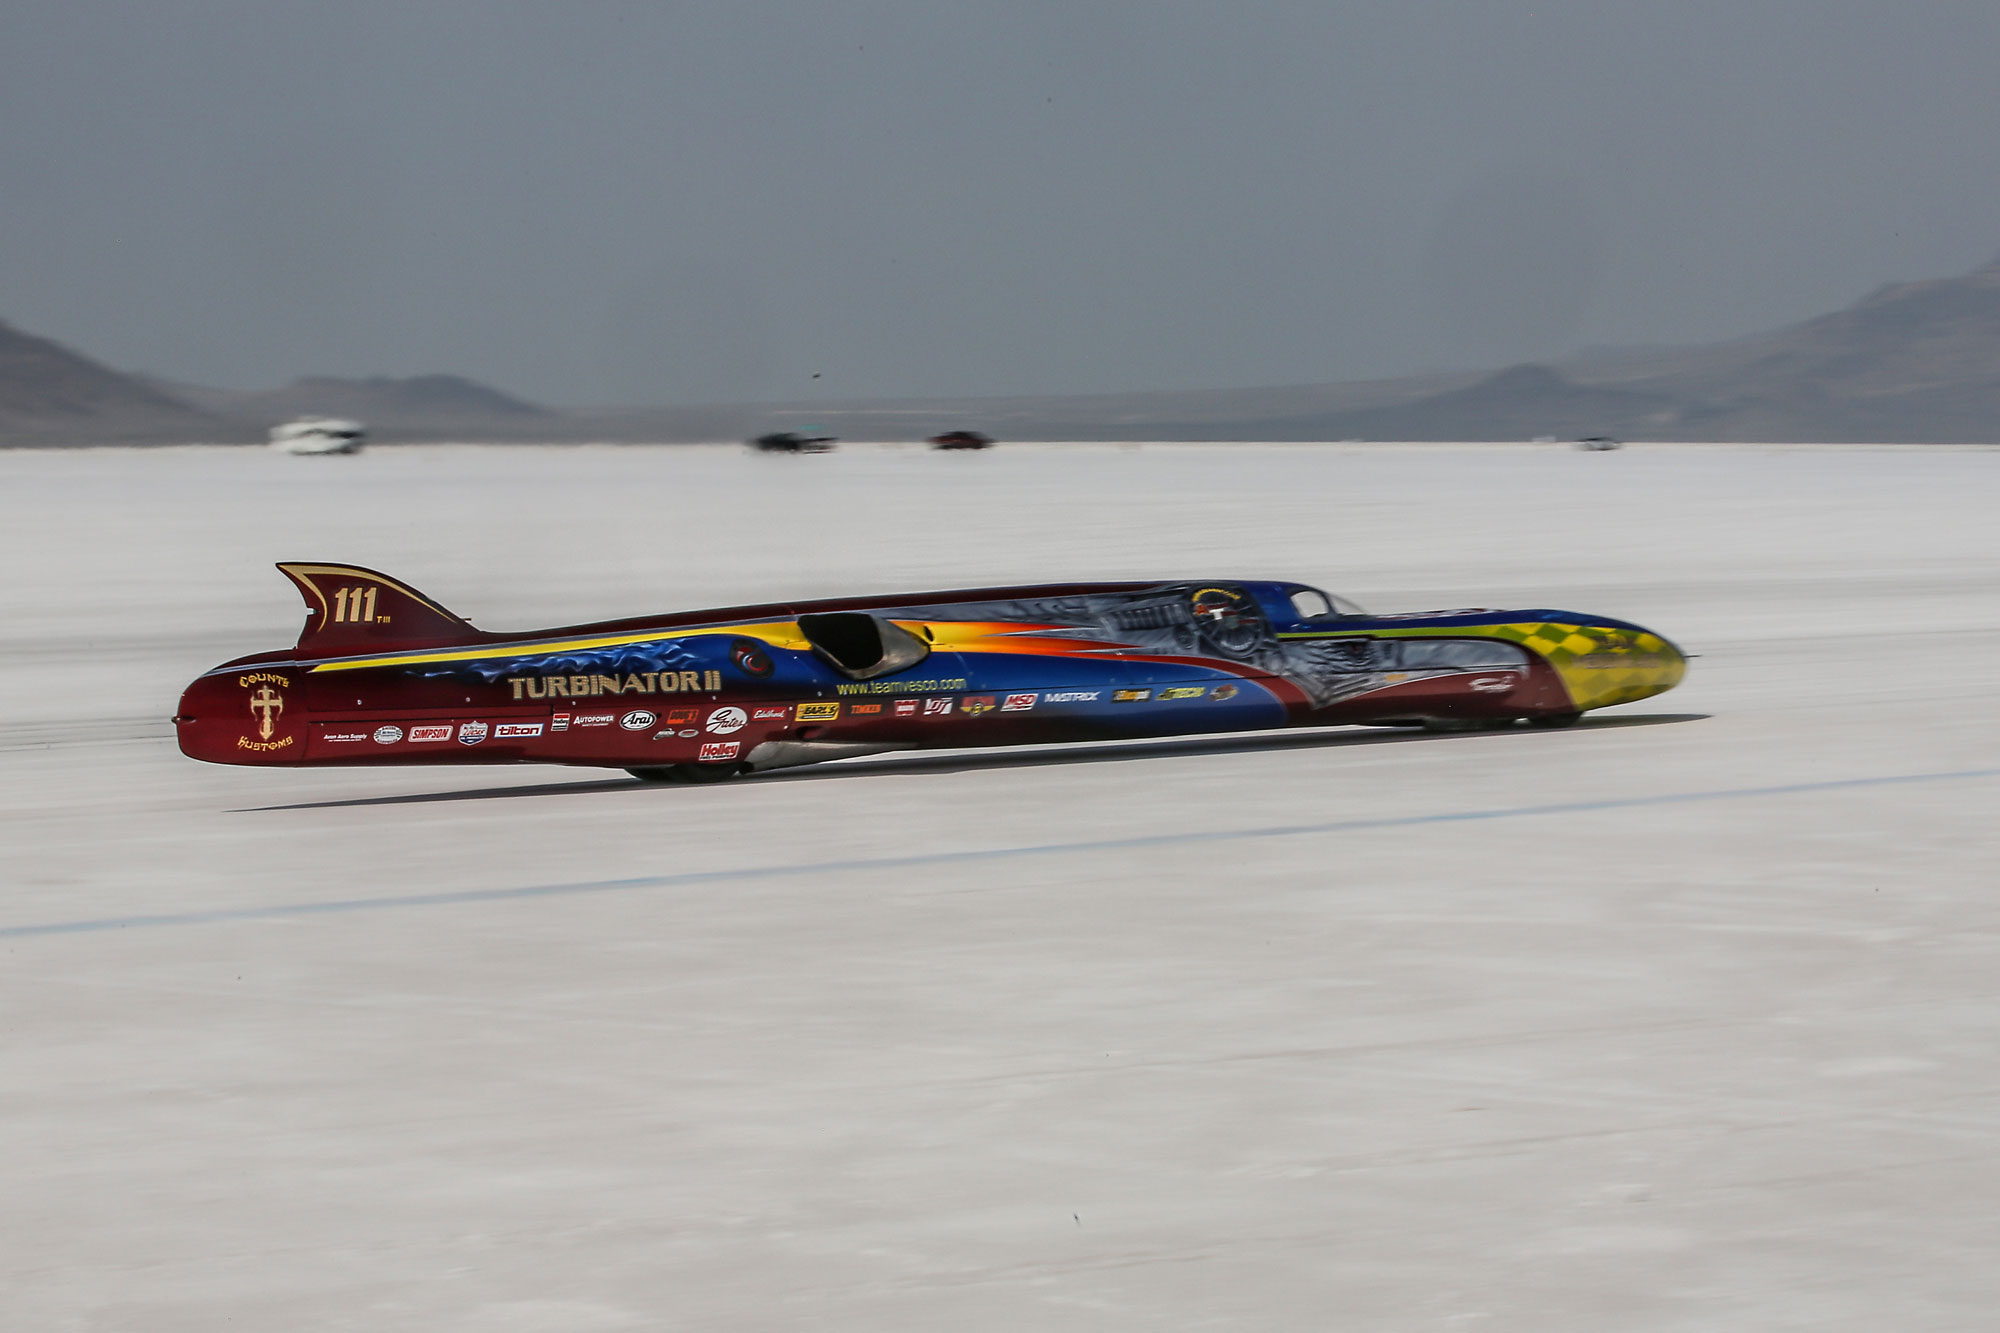 The Turbinator II streamliner pulls away from the starting line without the aid of a push truck.